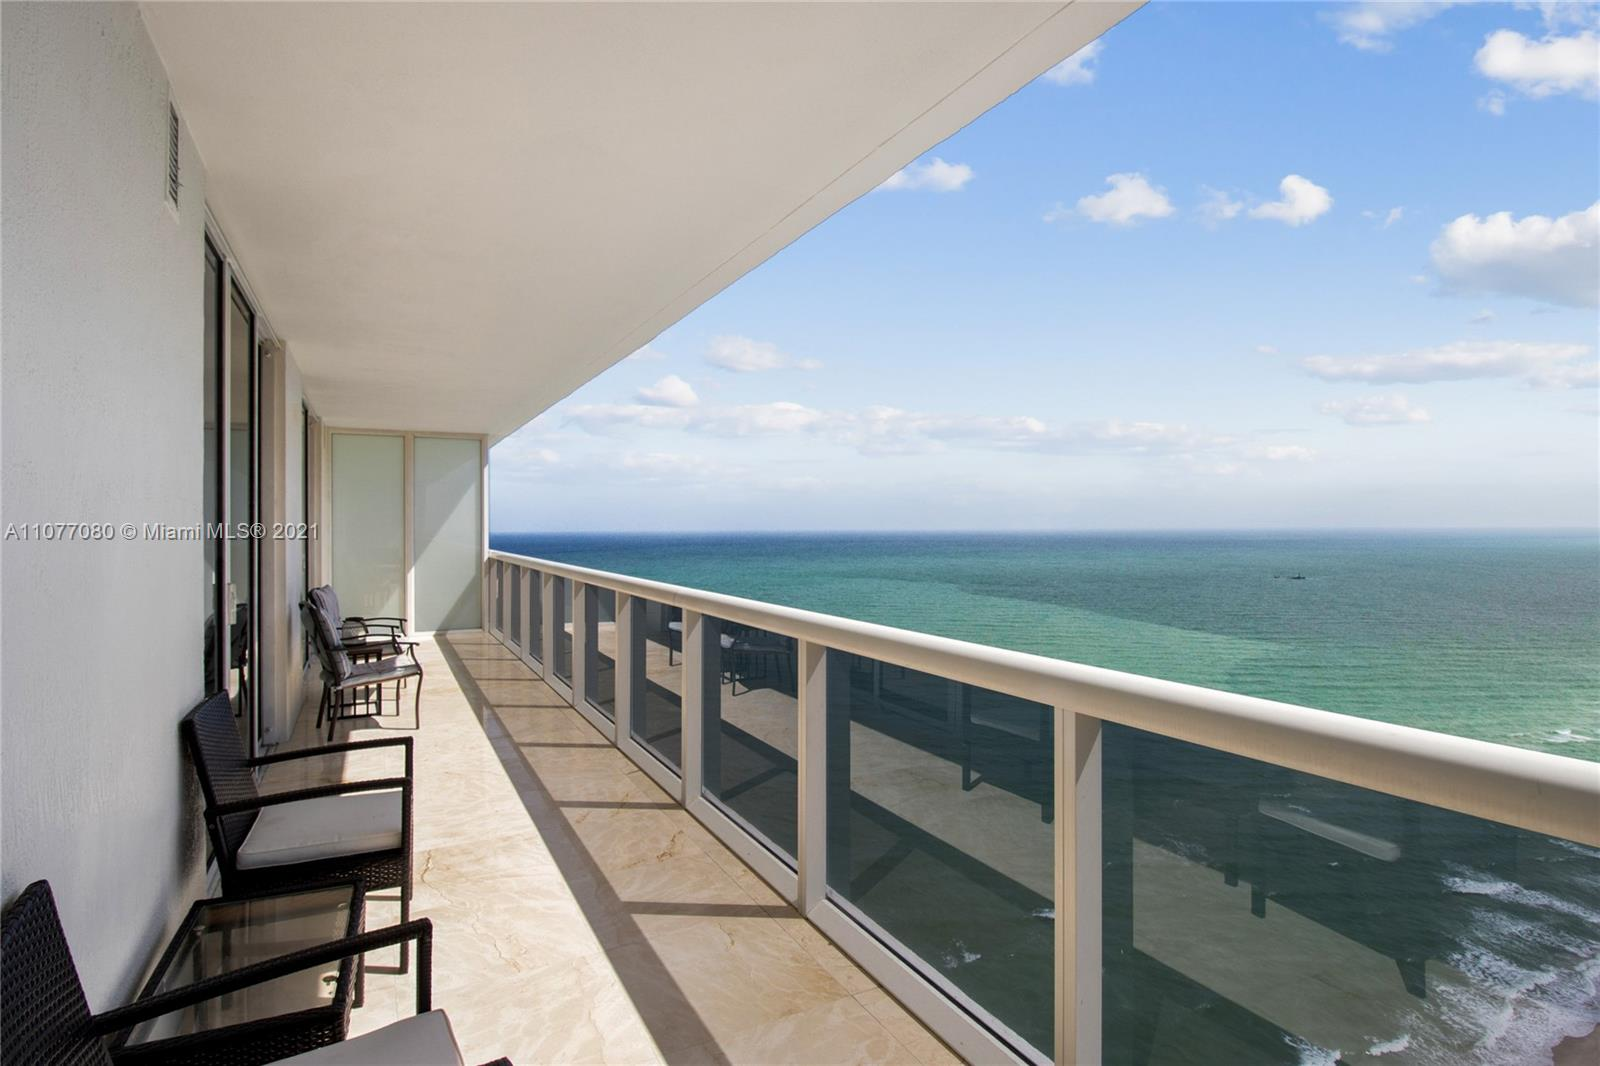 Breathtaking unobstructed Ocean, Intracoastal and city views from the 43rd floor. This amazing 3 beds 3 full baths unit with South East exposure features spacious and bright bedrooms, bathroom with separate shower and jacuzzi in master suite, marble floors throughout, built-in closets, granite counter tops and top of the line appliances. Impressive 50,000 sqft spa and fitness center overlooking the Atlantic Ocean, heated pools, Jacuzzi, sauna, beach service, poolside bar and 24hr concierge service and valet. Centrally located between Miami and Fort Lauderdale, The Beach Club is the most prestige building in Broward. Minutes to restaurants, shopping and Gulfstream Race Park and Casino. The unit can be rented 12 times per year.